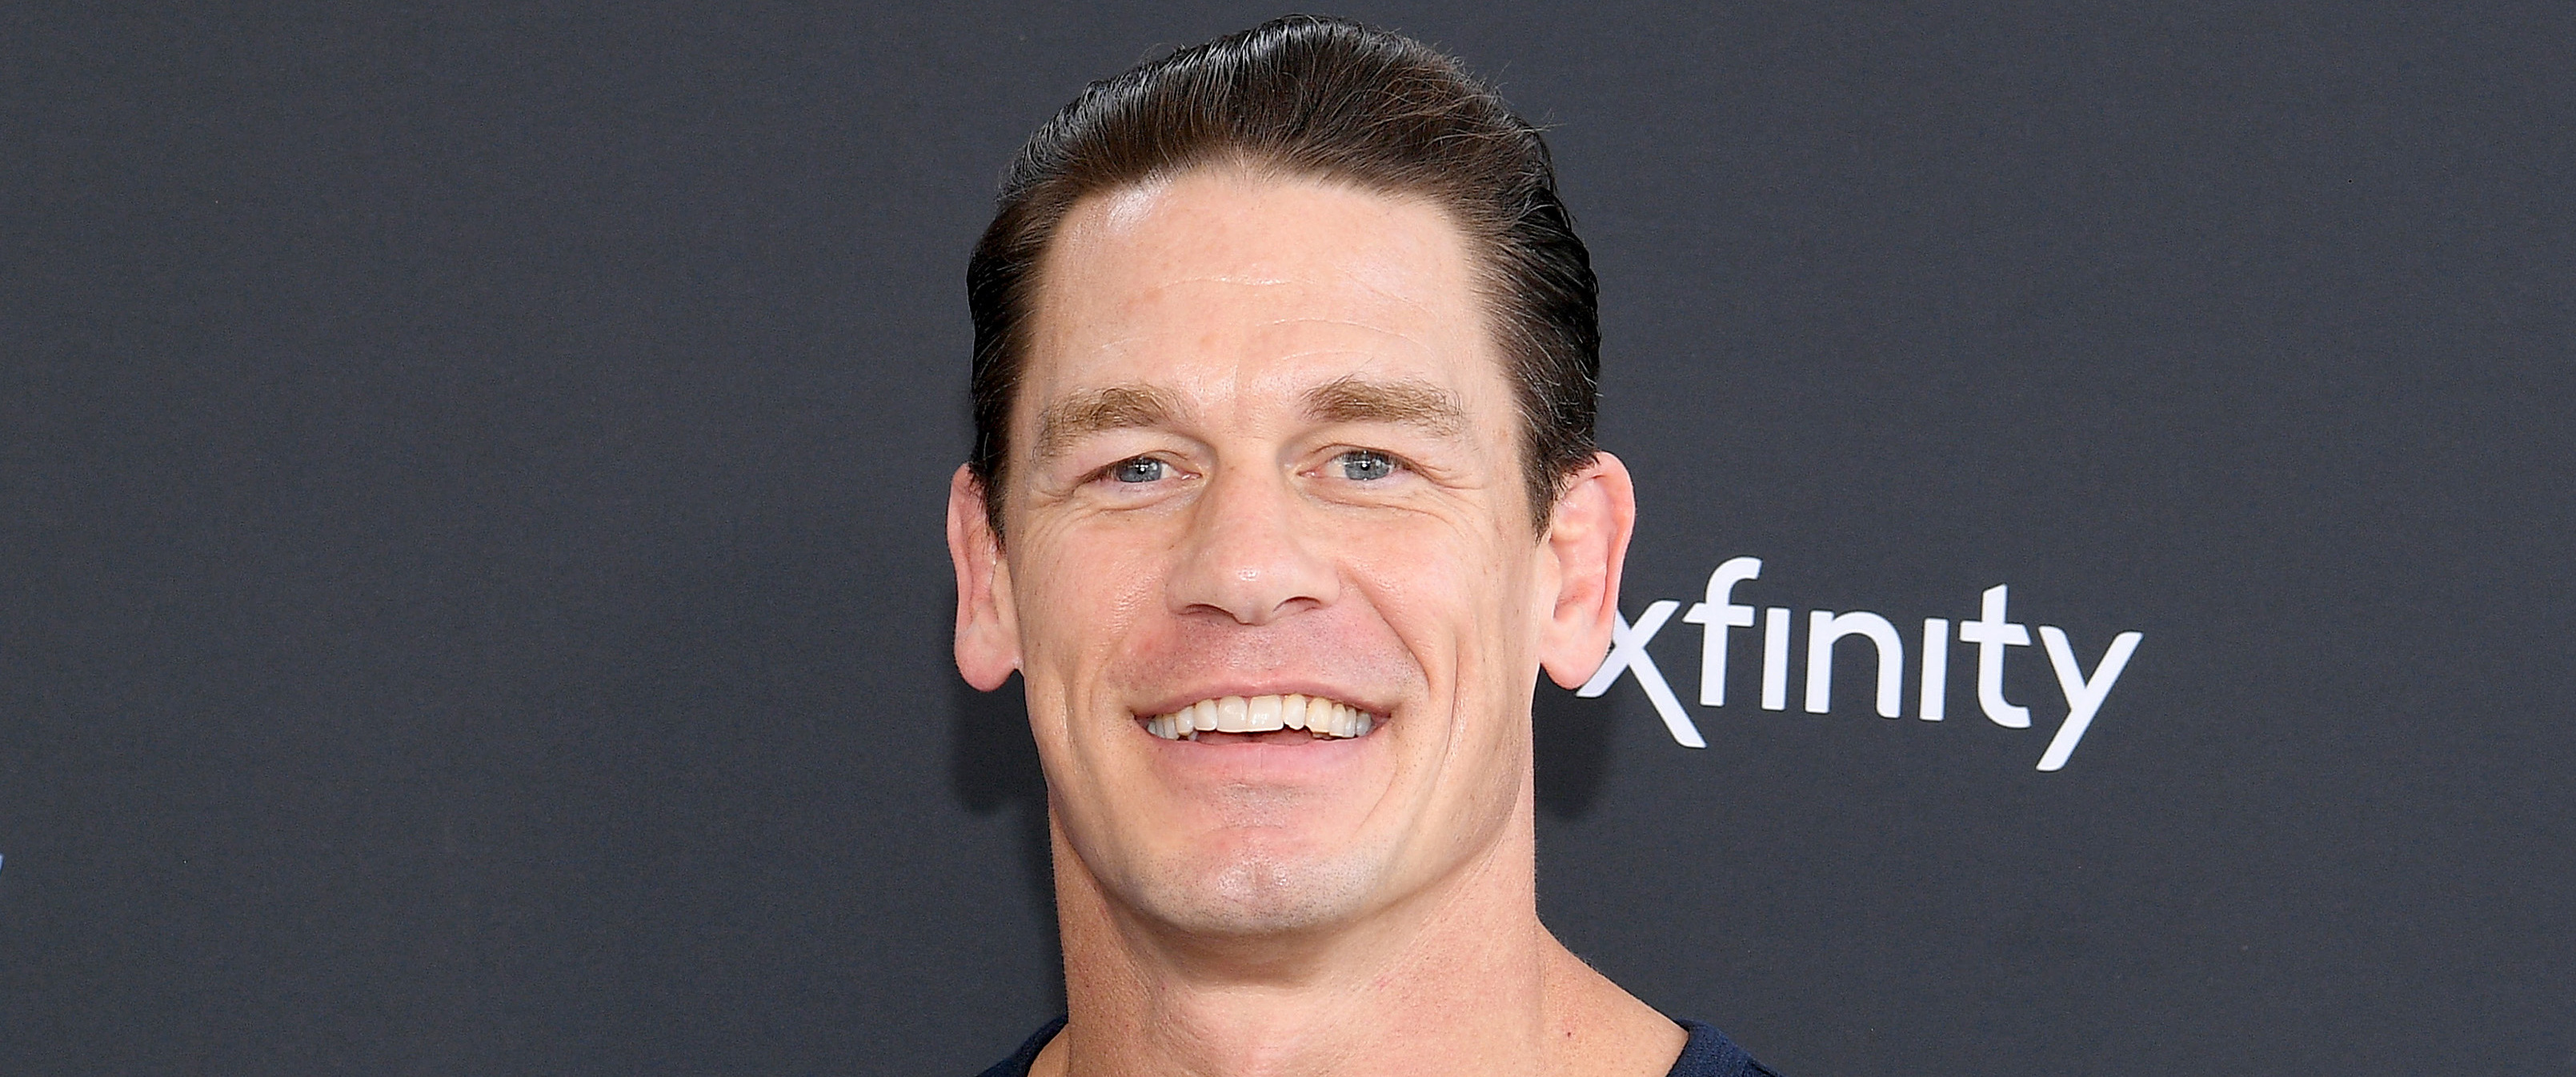 John Cena Will Publish Books Based on His Tweets